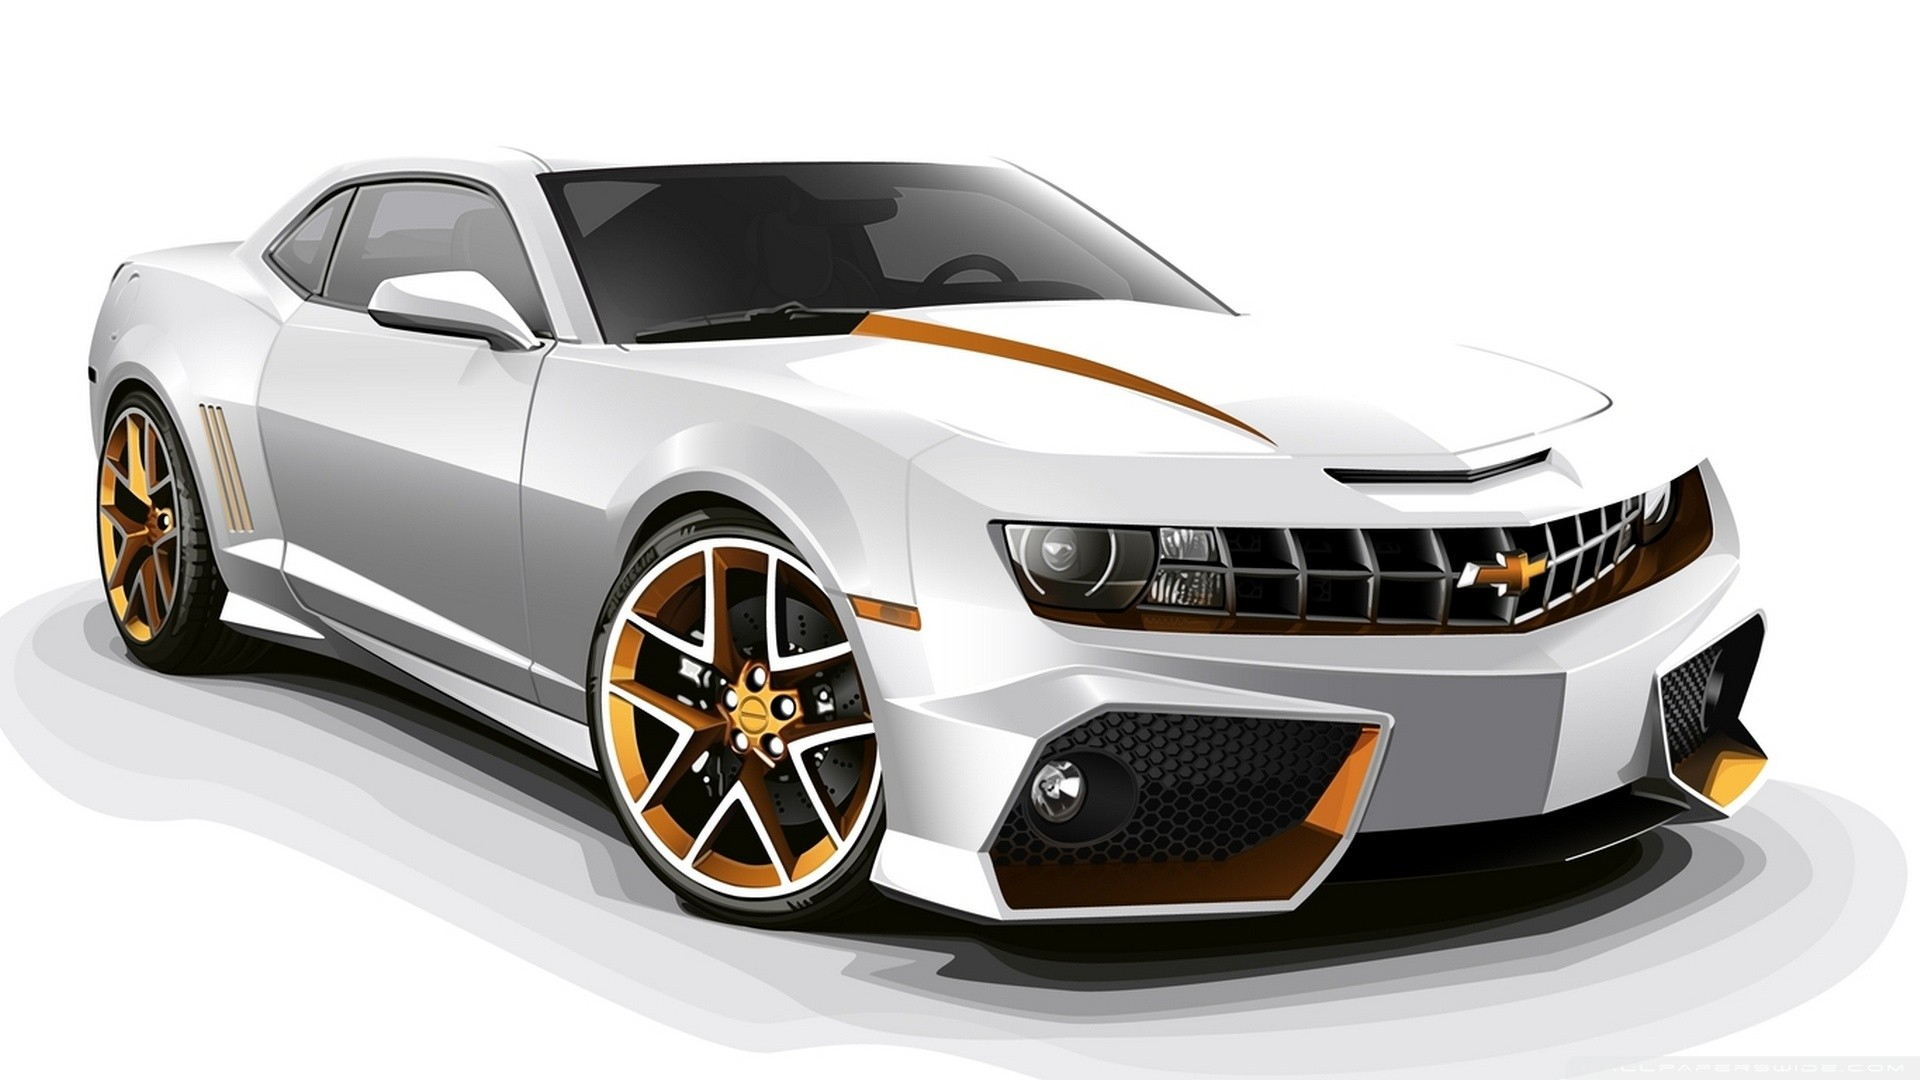 Cars-Chevrolet-Camaro-ss-1080-wallpaper-wp3803649